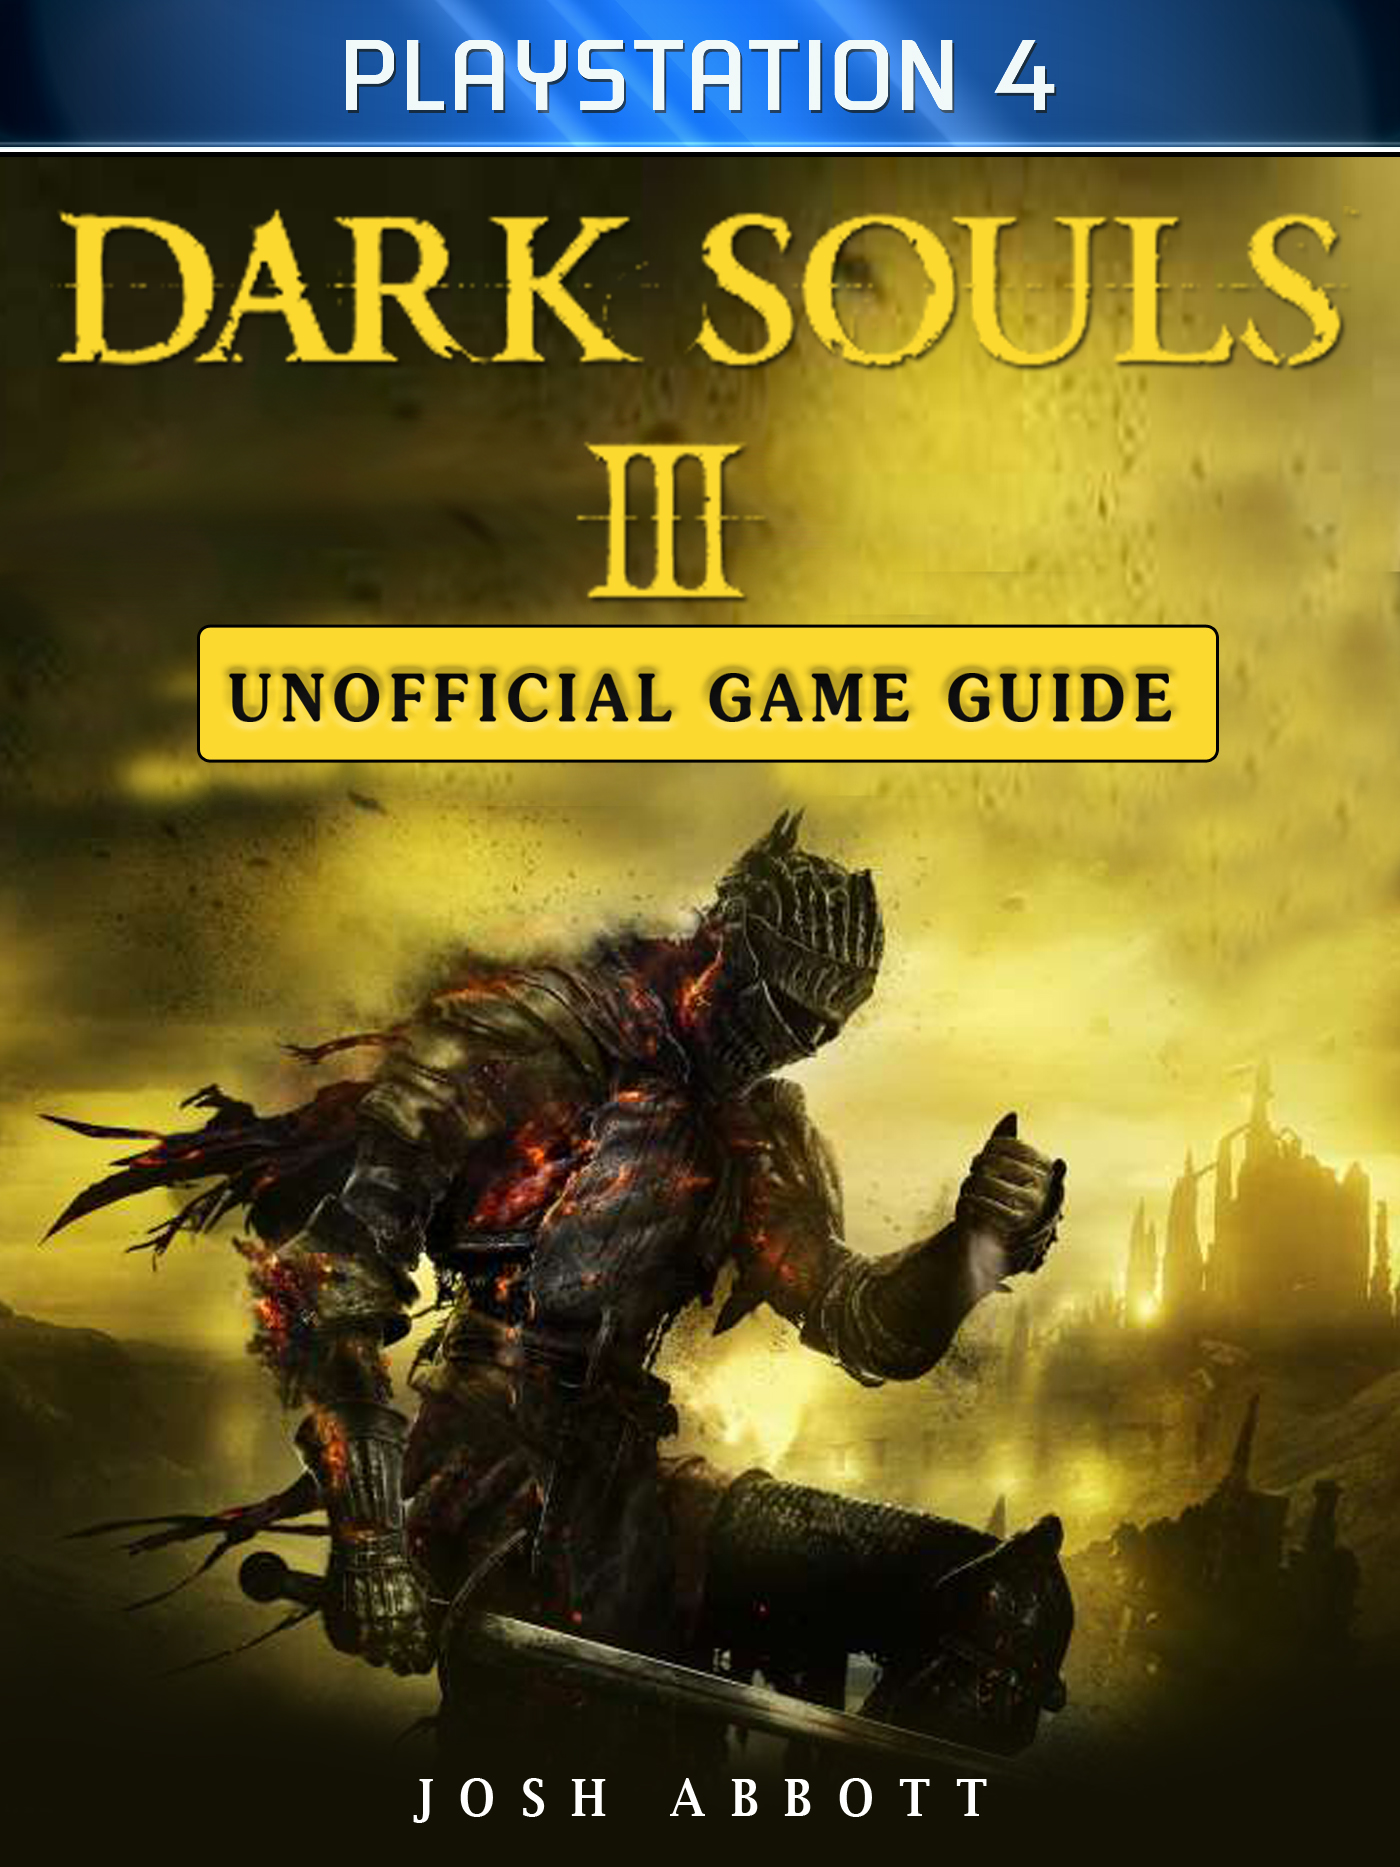 Dark Souls III Playstation 4 Unofficial Game Guide